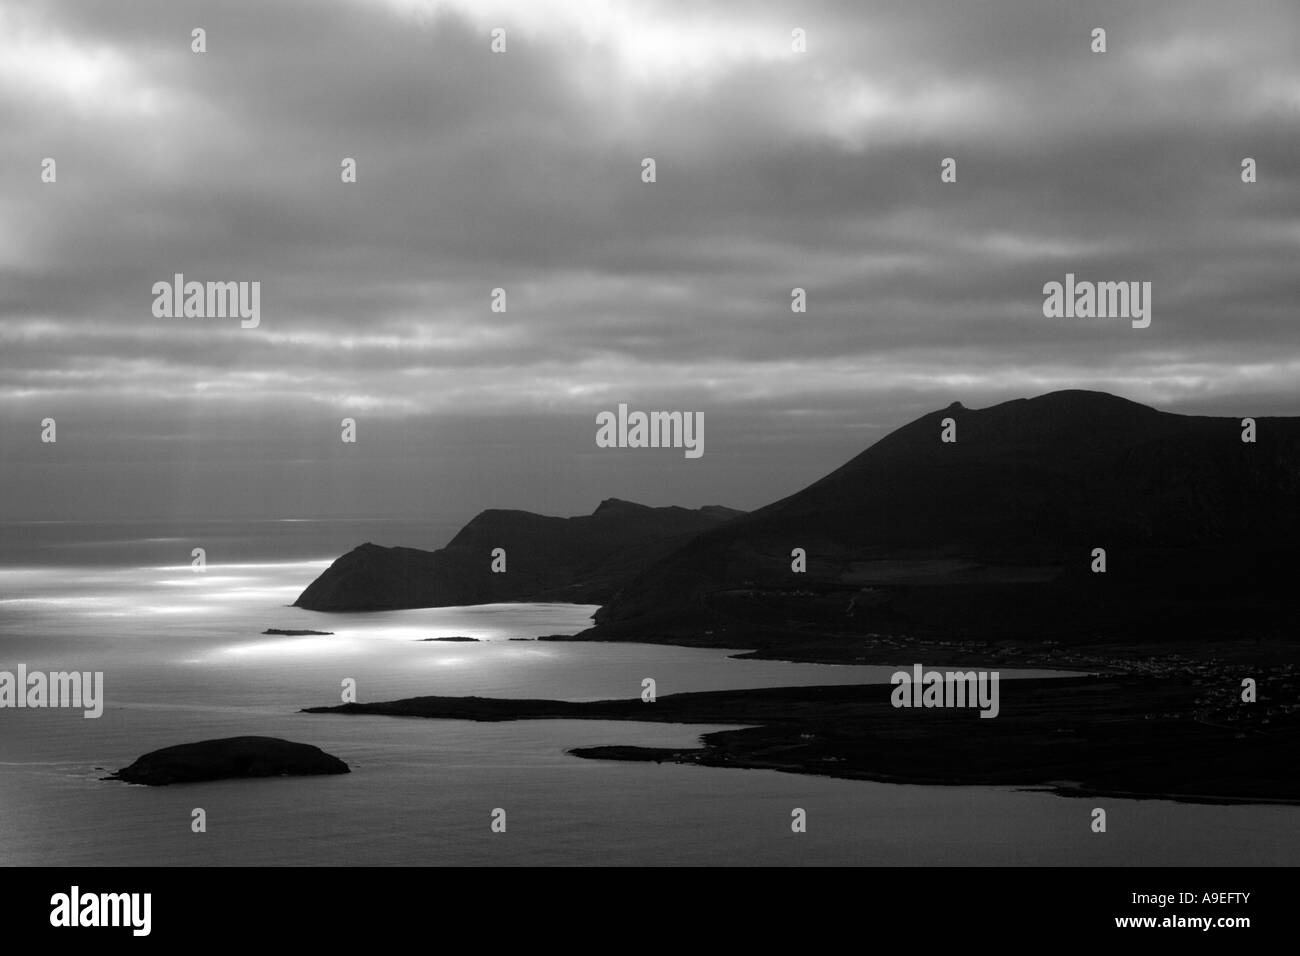 Silhouetted coastline of Achill Island, Ireland, lit by beams of light breaking through the clouds. Stock Photo